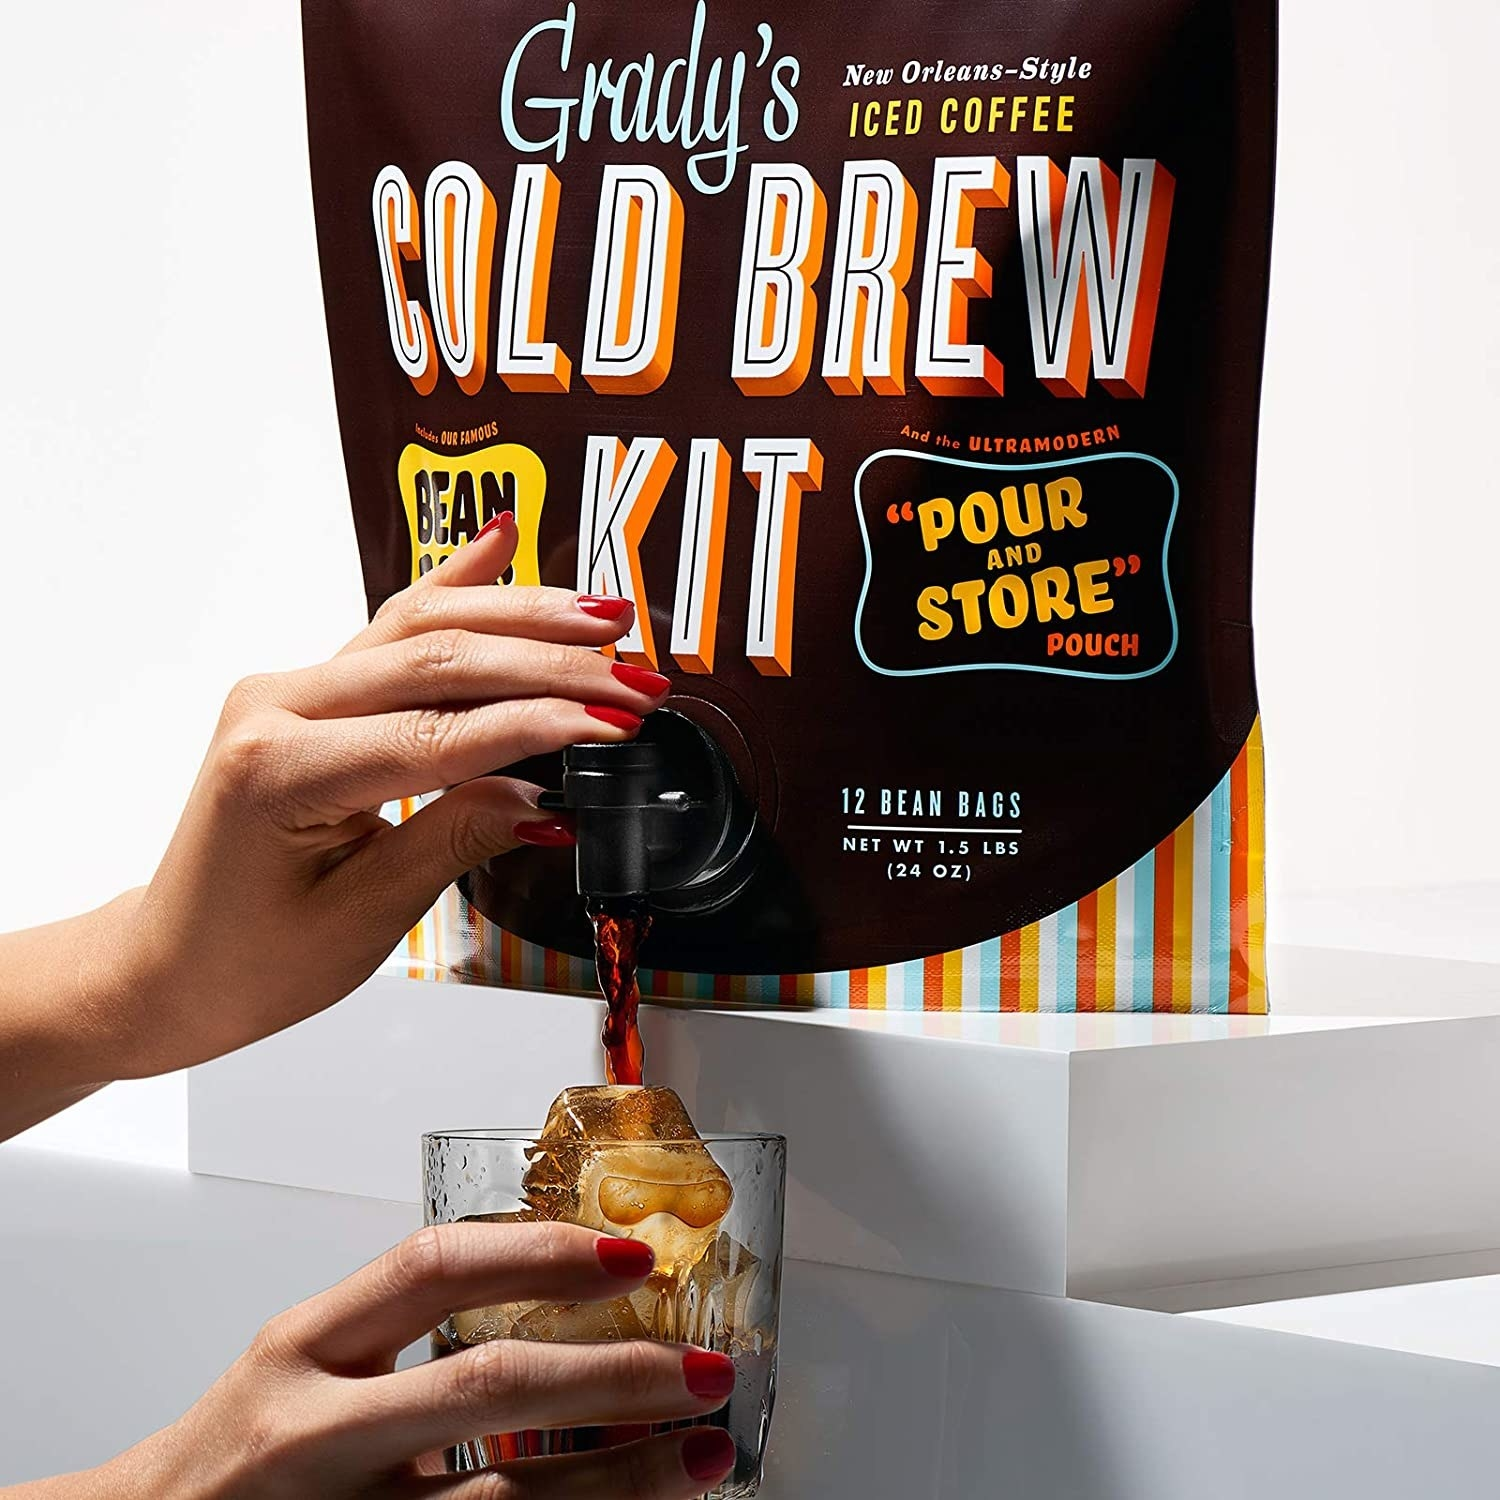 Model pouring cold brew from Grady's cold brew bag